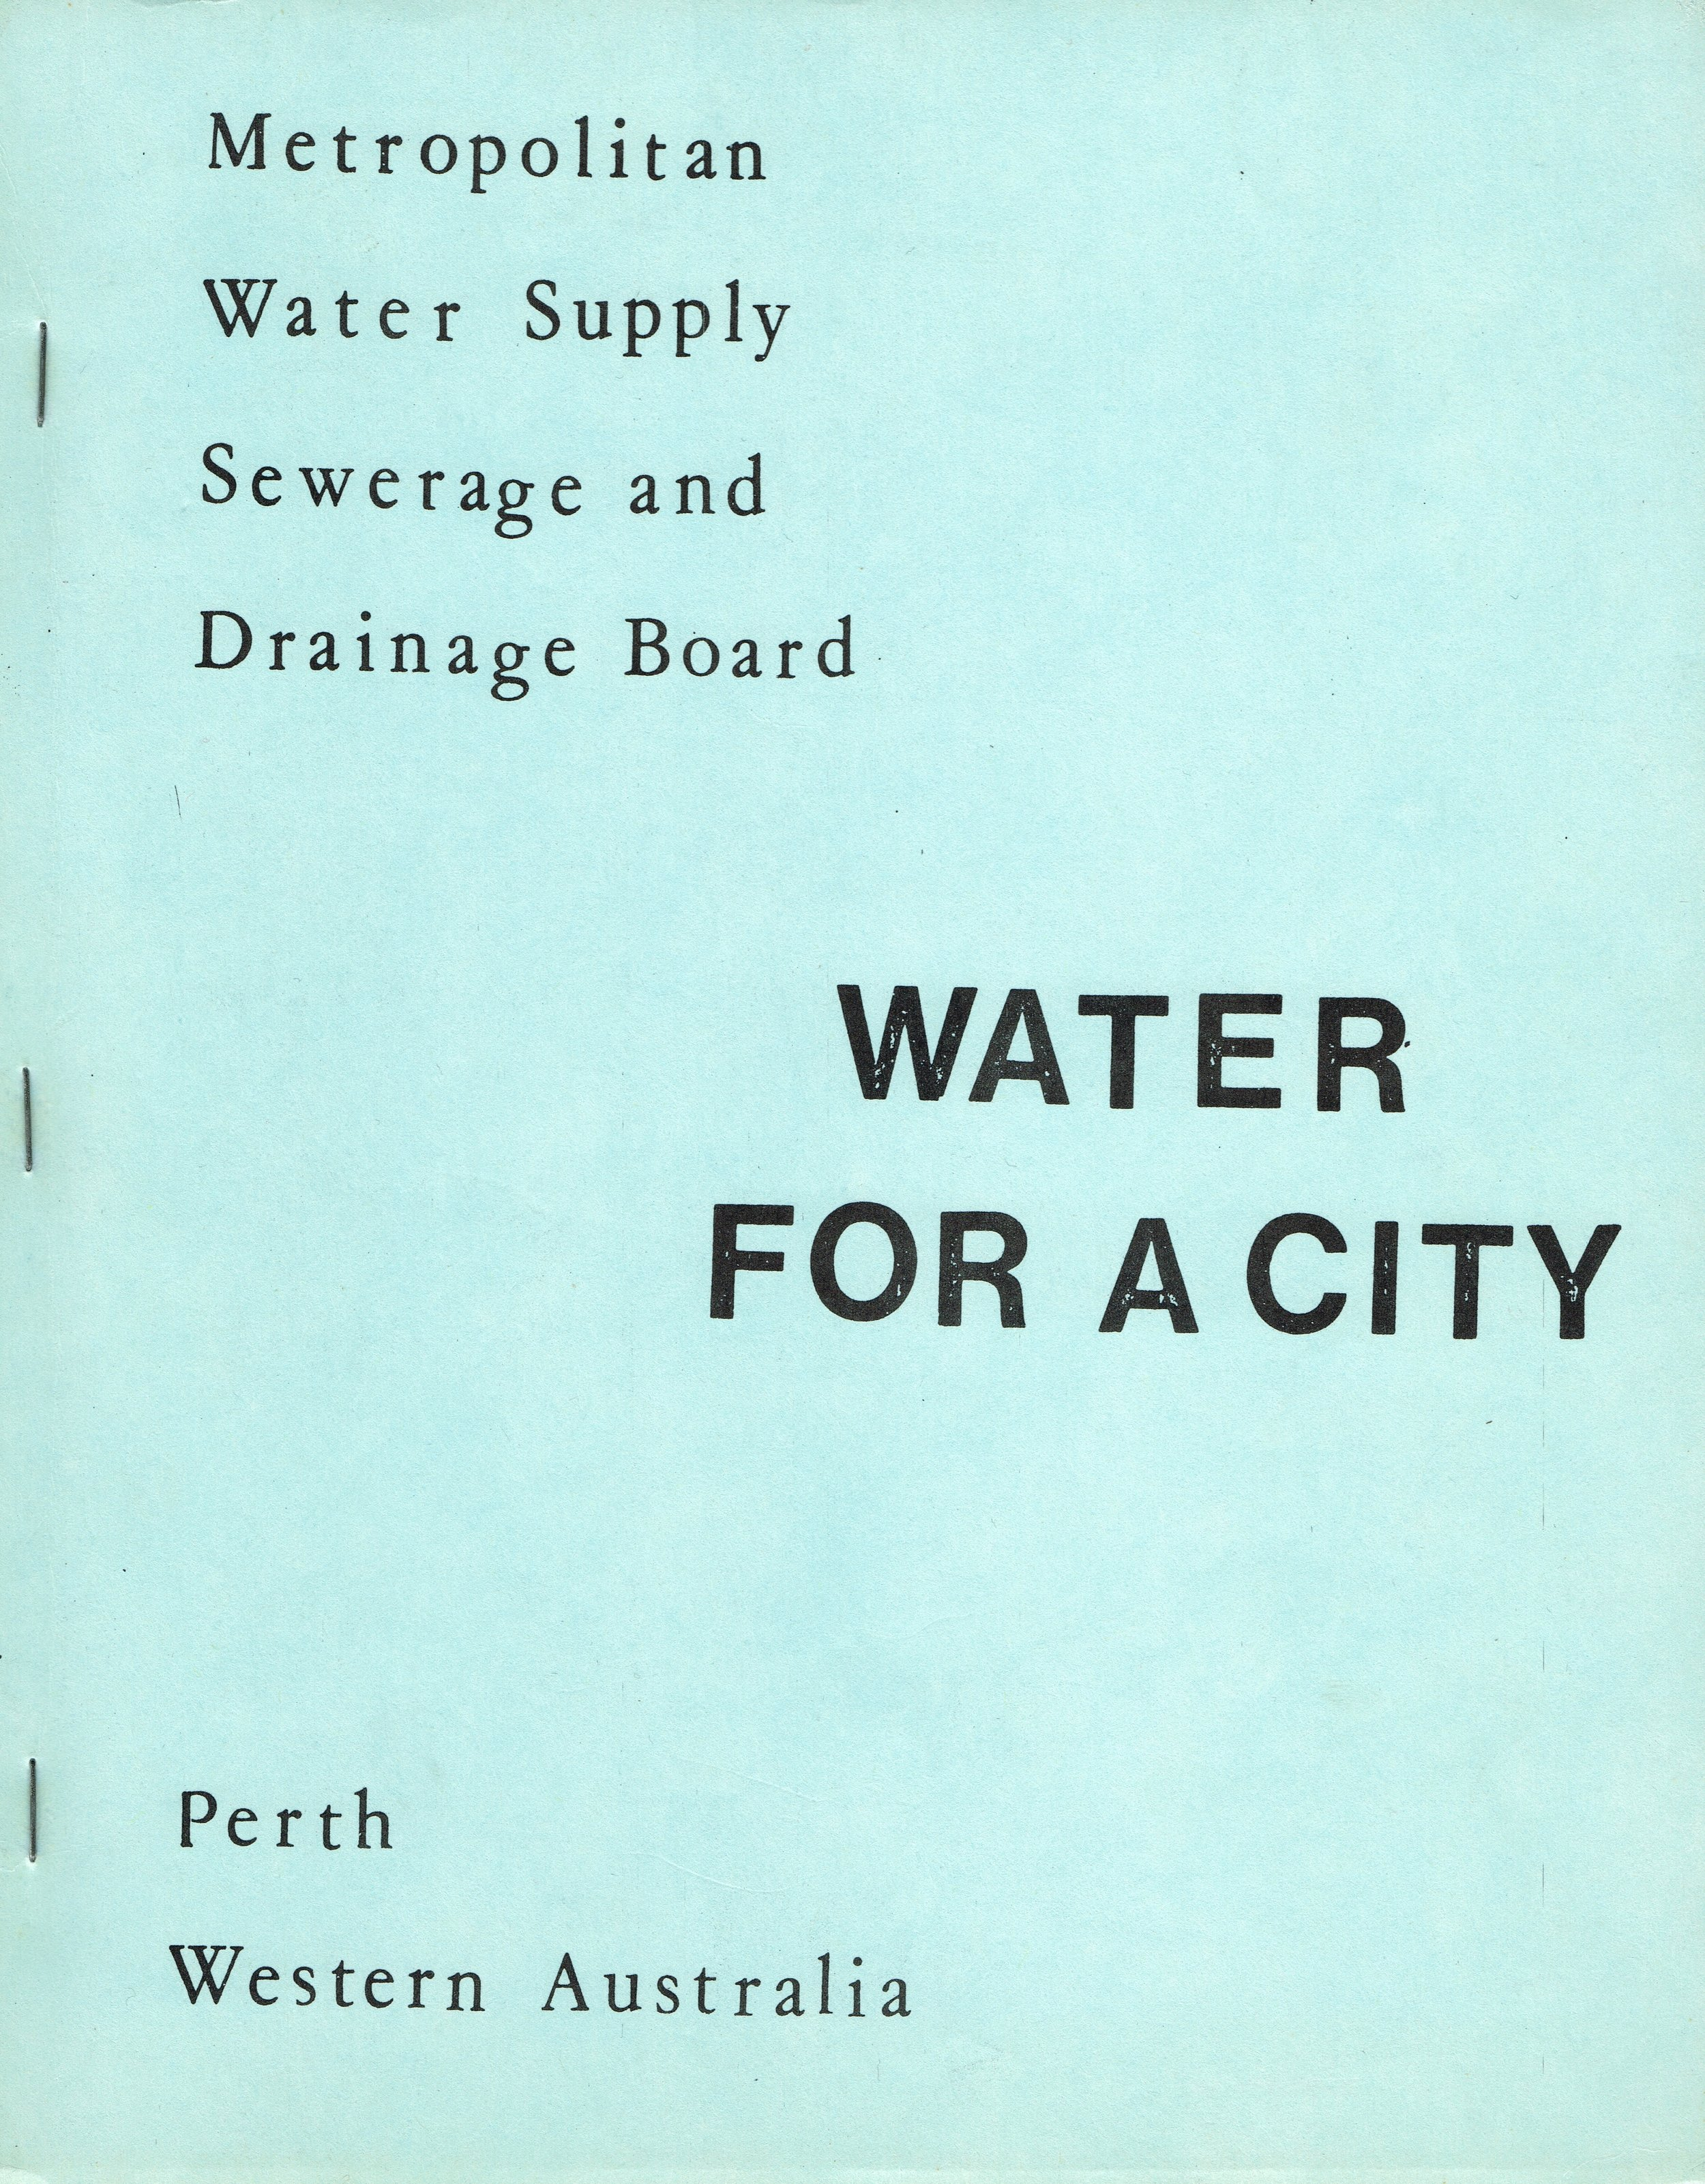 Water for a City : Perth Western Australia  Metropolitan Water Supply Sewerage and Drainage Board